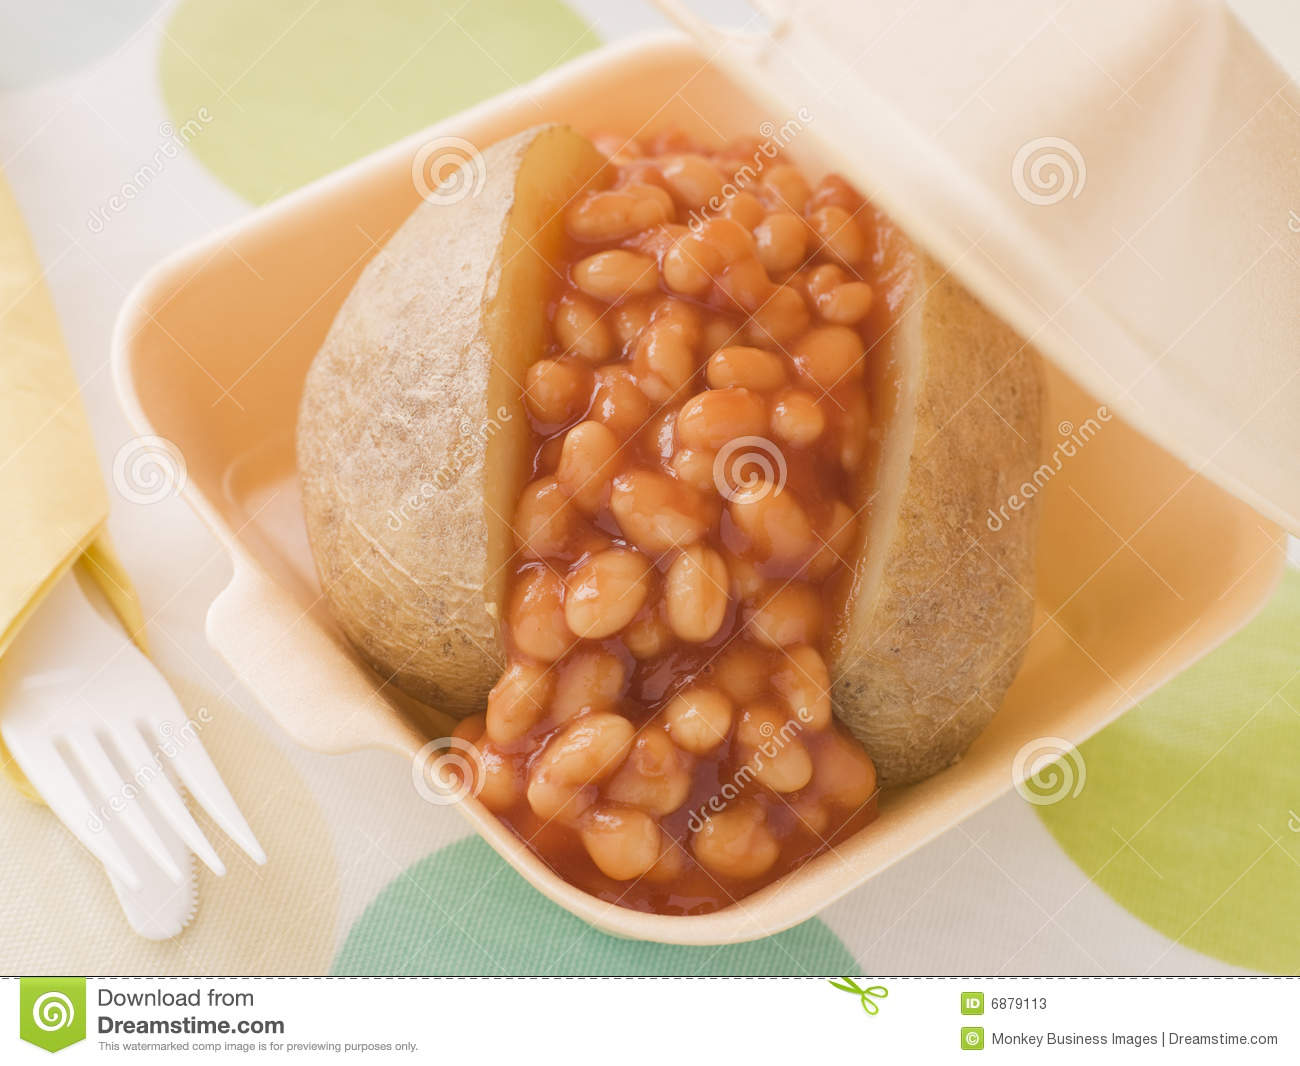 Baked Potato With Baked Beans And Cheese Stock Image Image Of